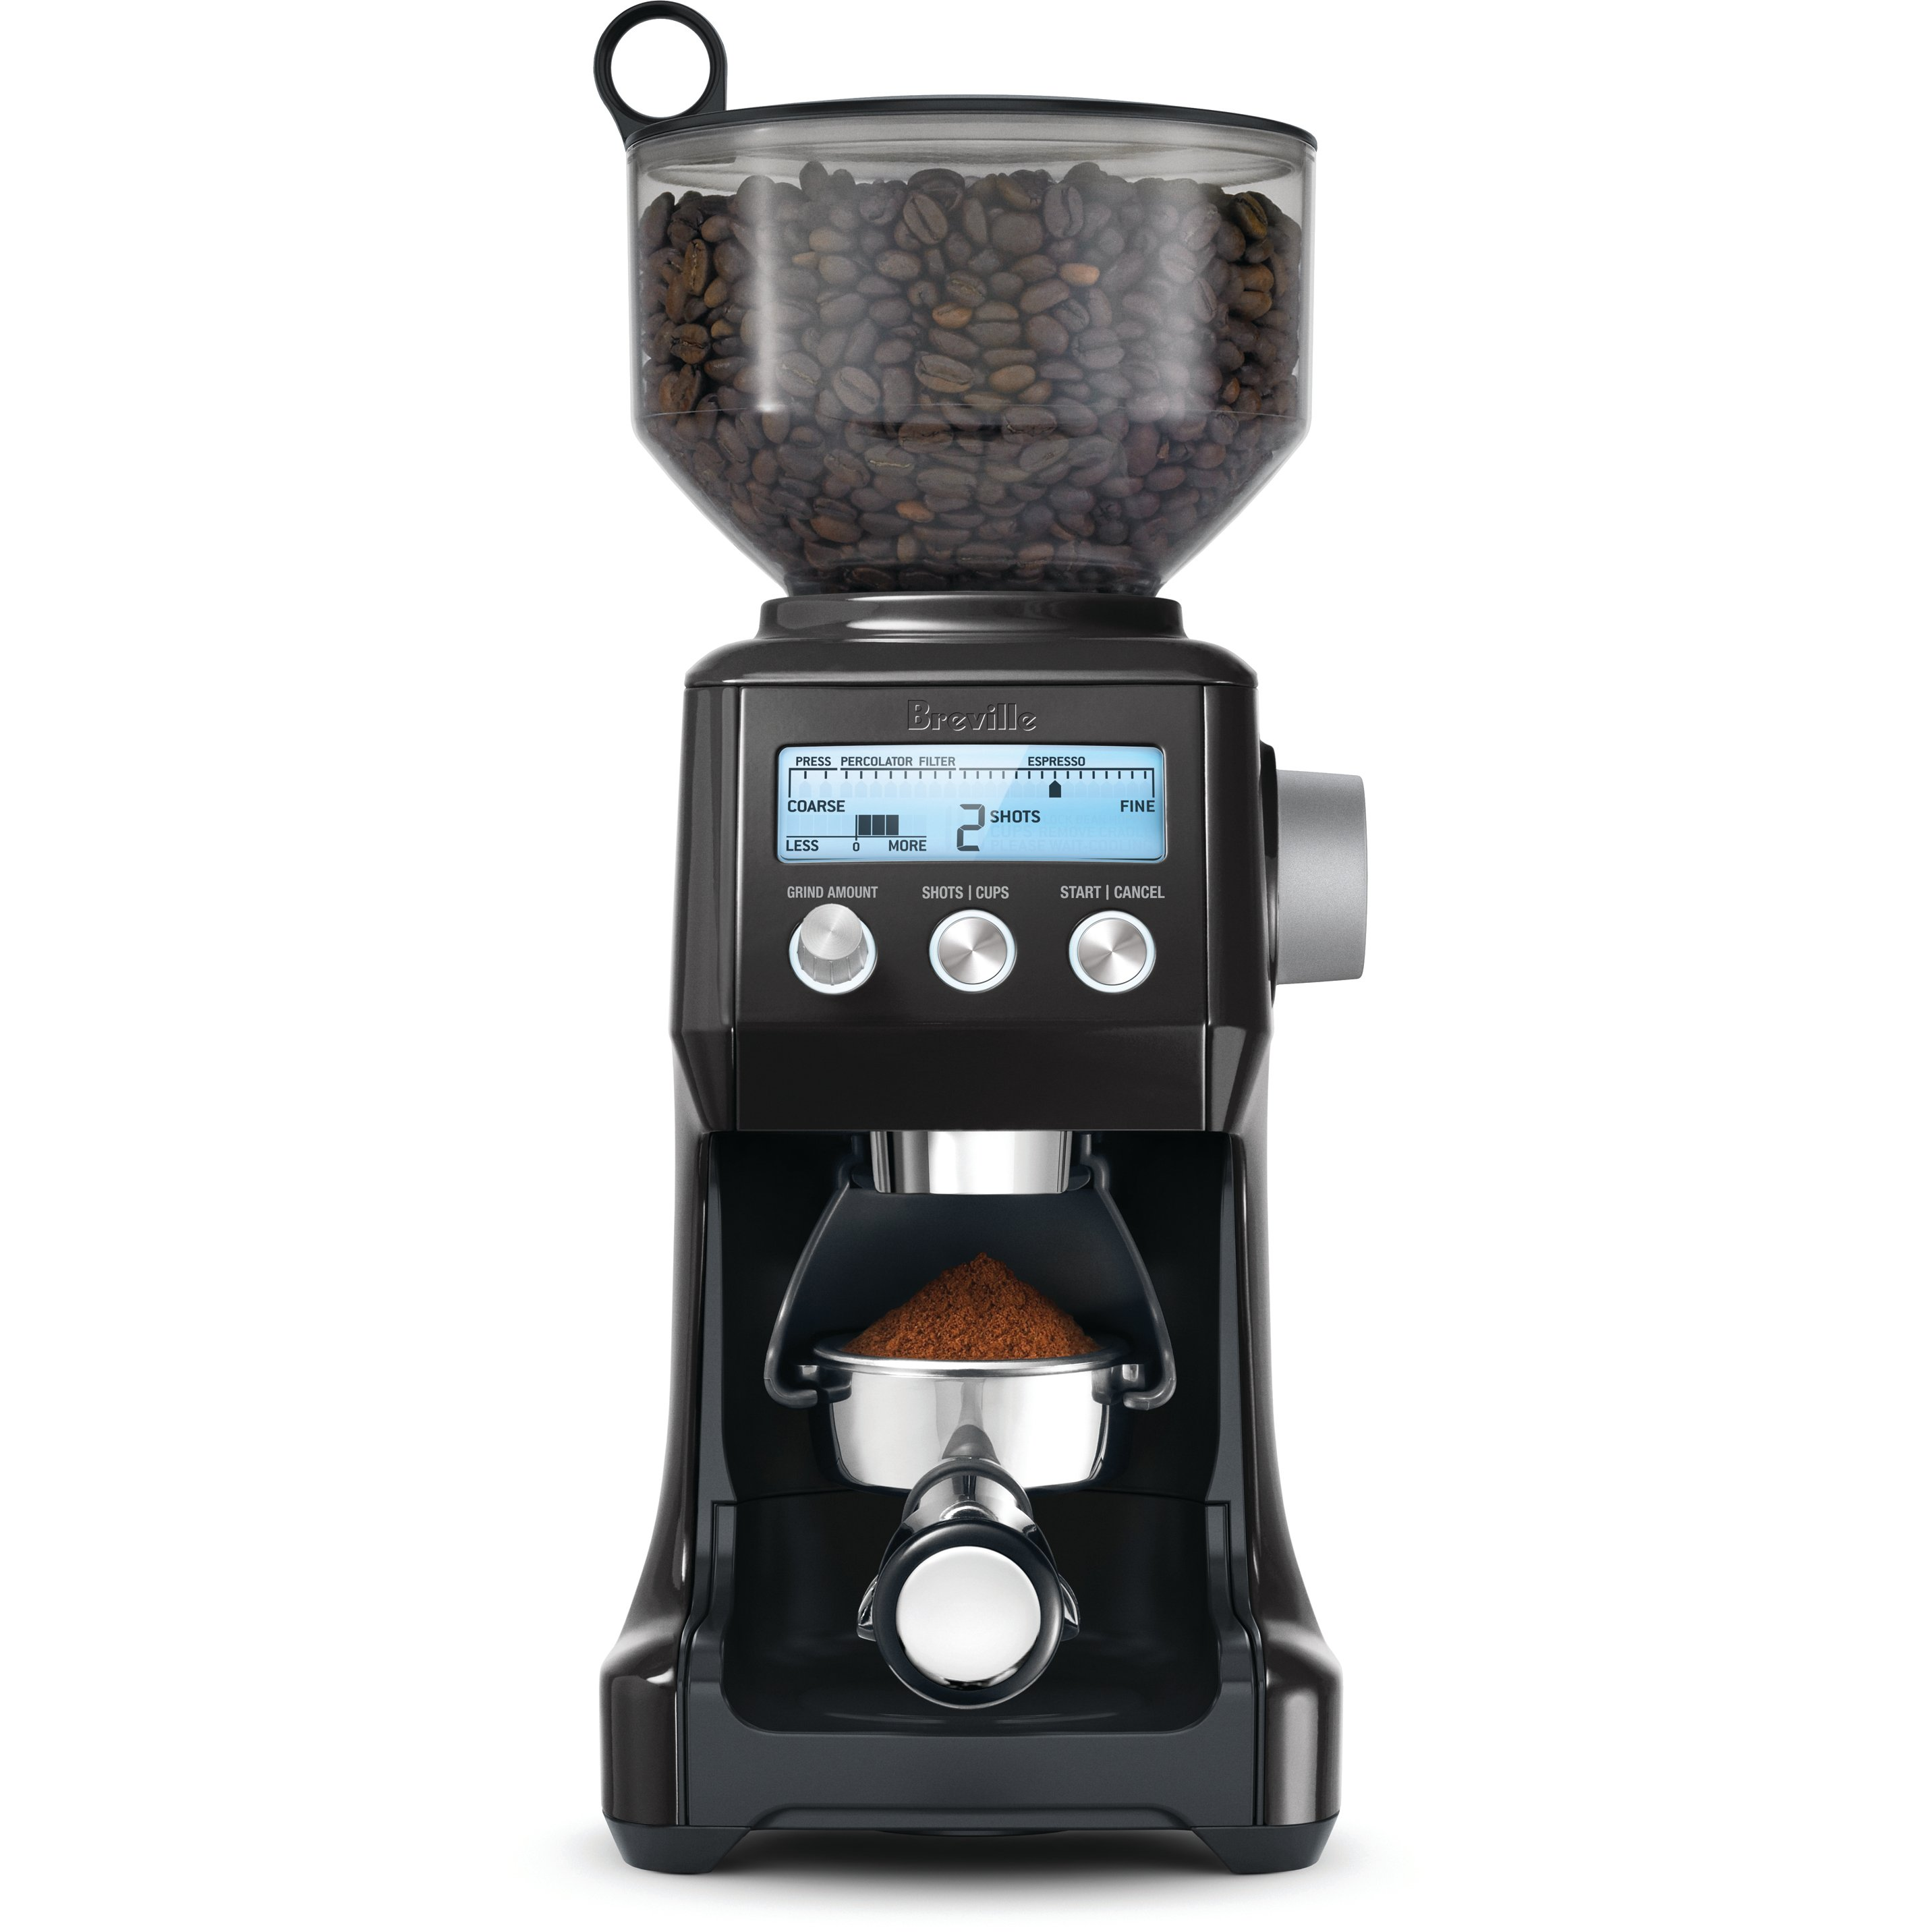 Breville BCG800BSXL Smart Grinder Black Sesame Die-Cast Metal Conical Burr Coffee Grinder